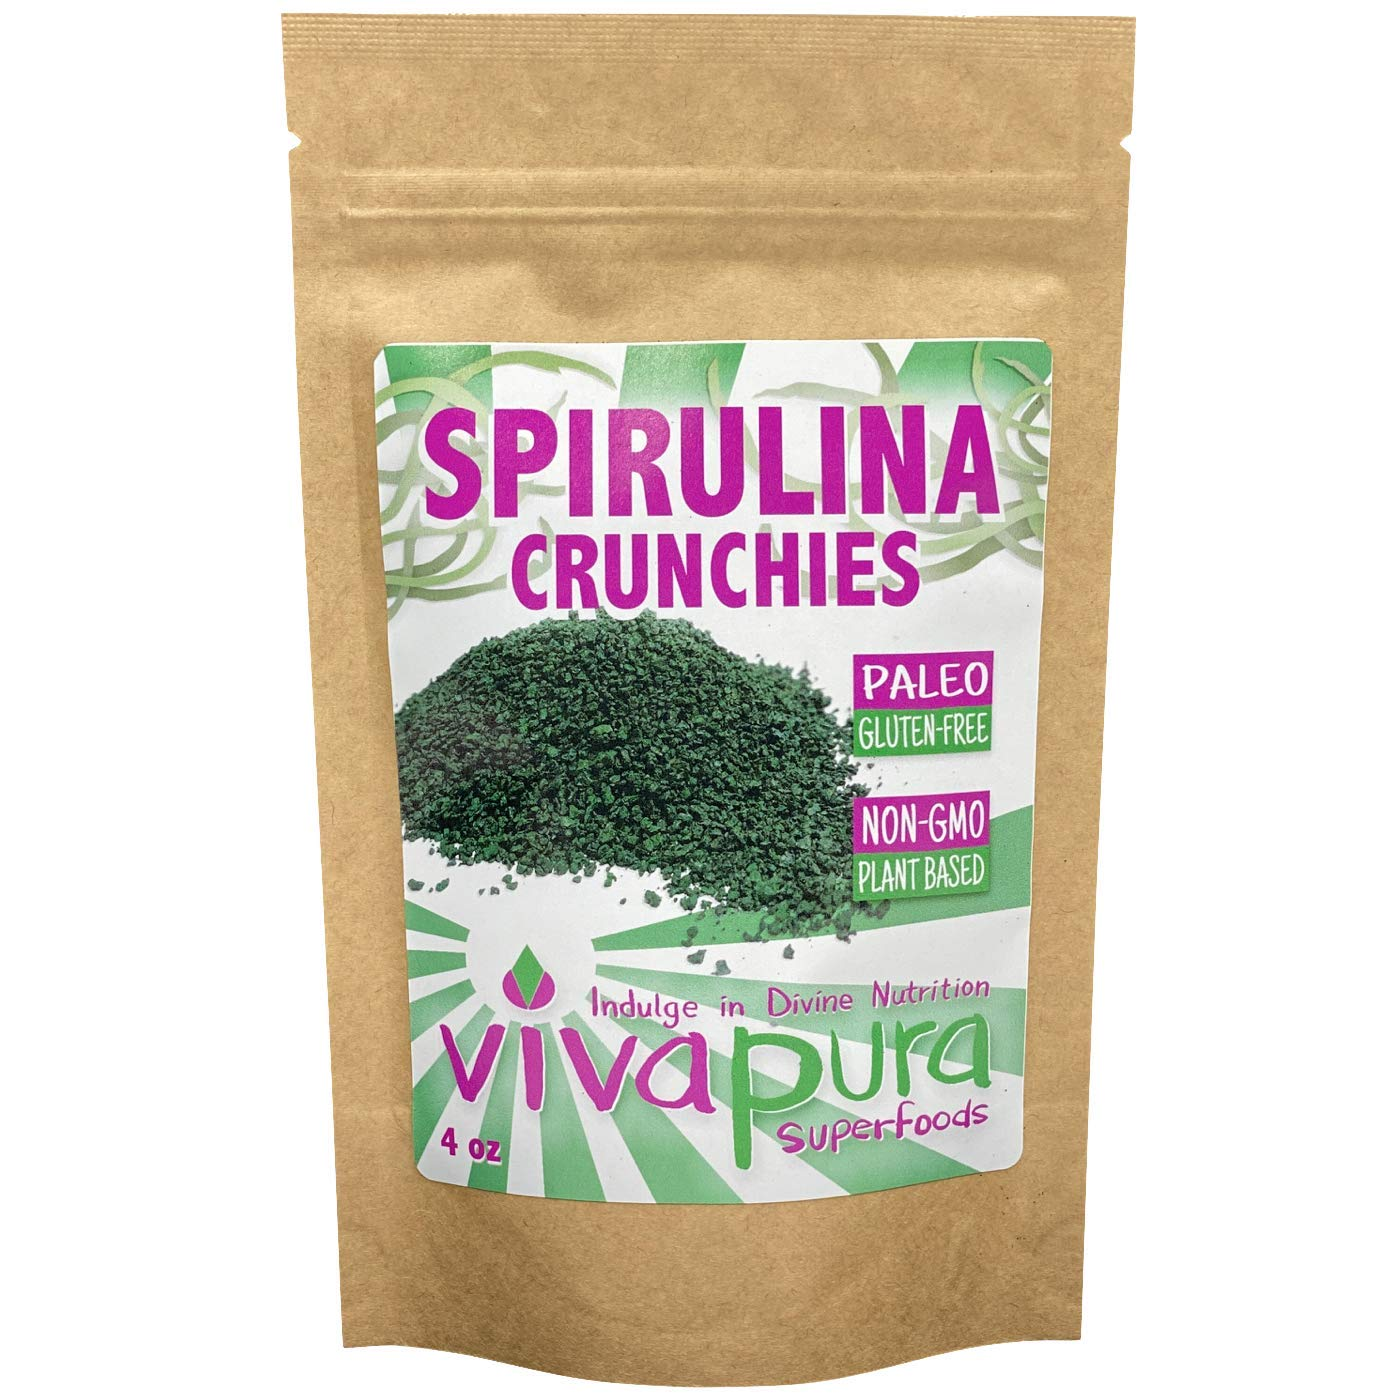 Vivapura Superfoods Spirulina Crunchies, 4 oz - Vegan | Keto | Compostable Bag